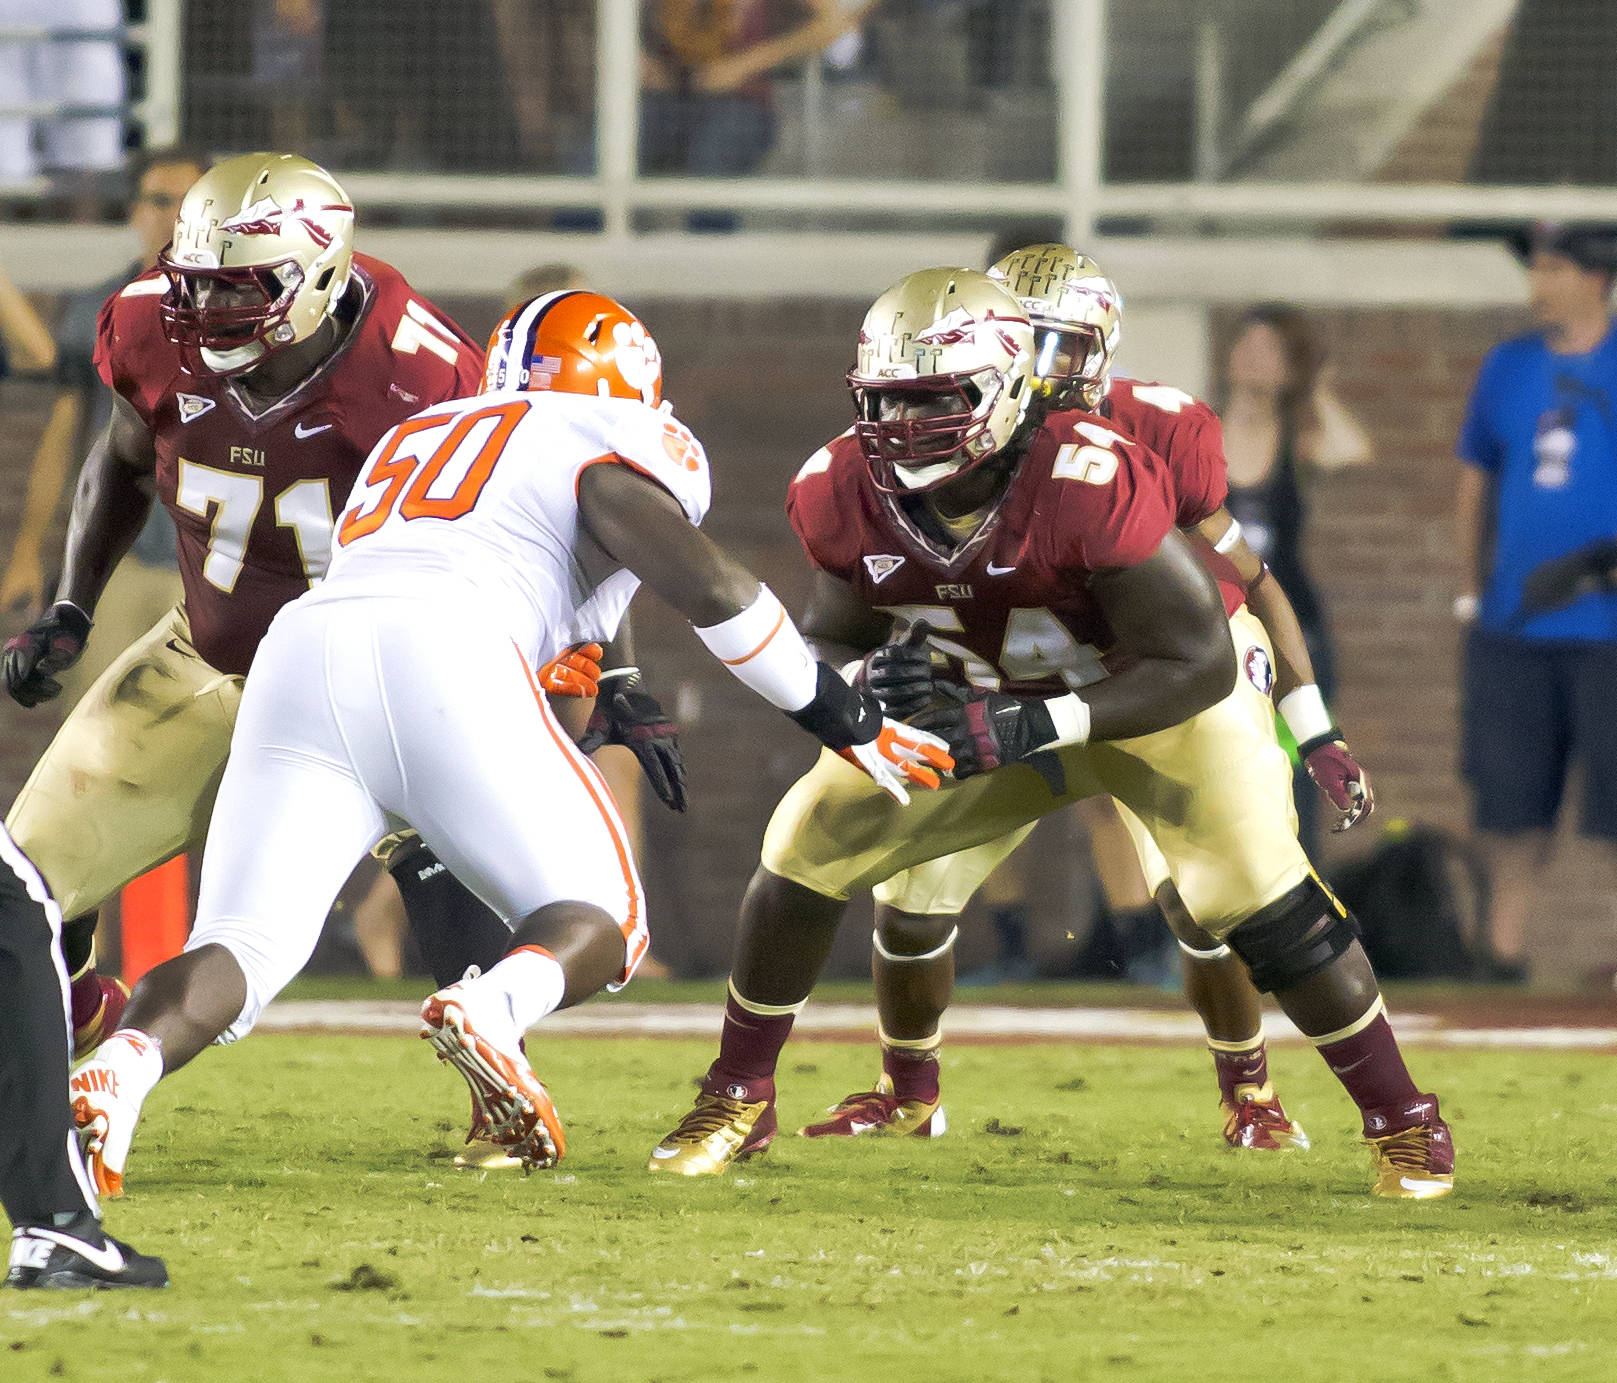 Tre' Jackson (54) blocking, FSU vs Clemson, 9/22/12 (Photo by Steve Musco)